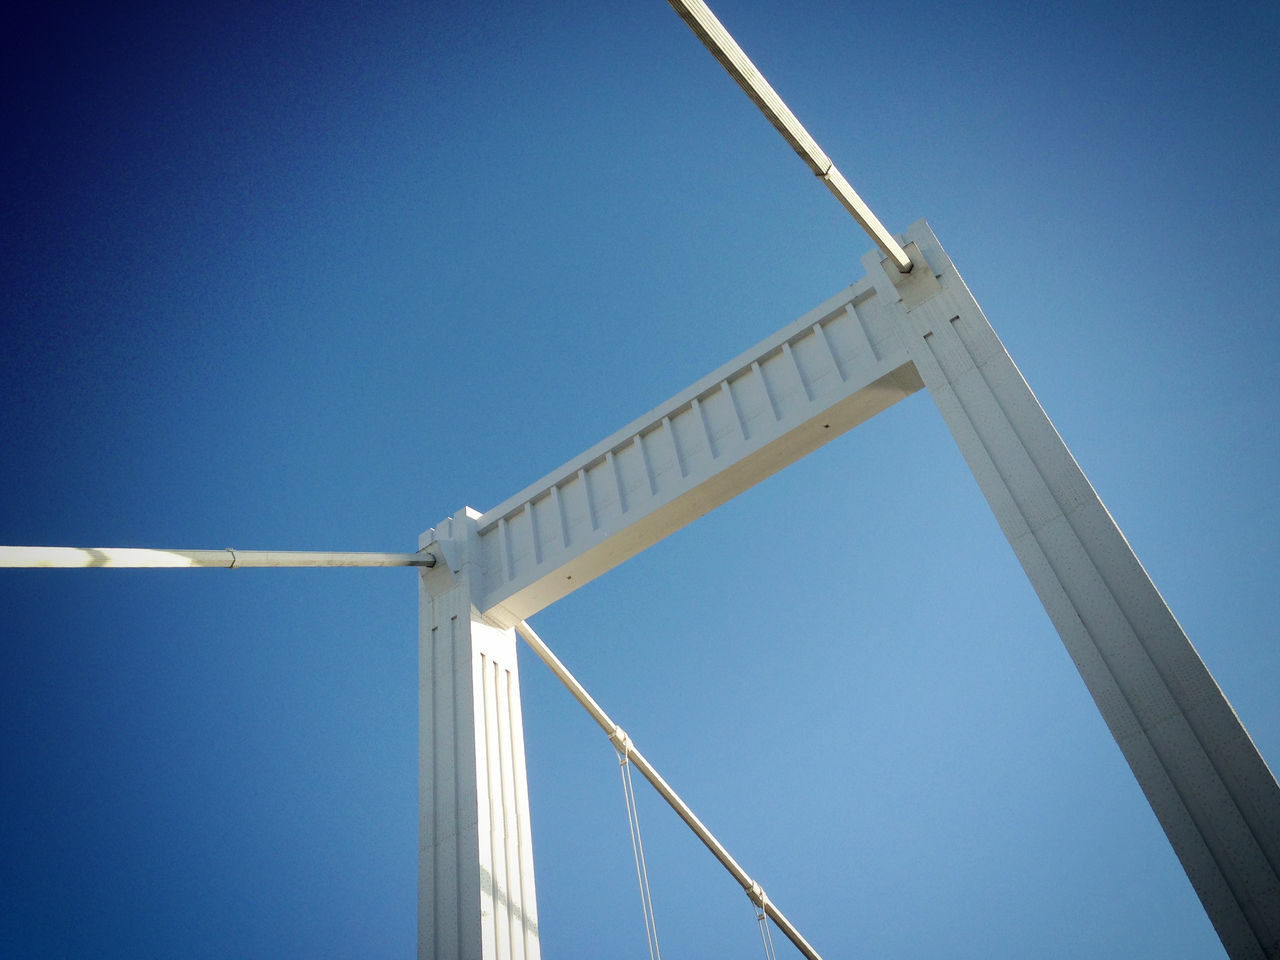 low angle view, blue, clear sky, day, outdoors, no people, sunlight, built structure, alternative energy, architecture, sky